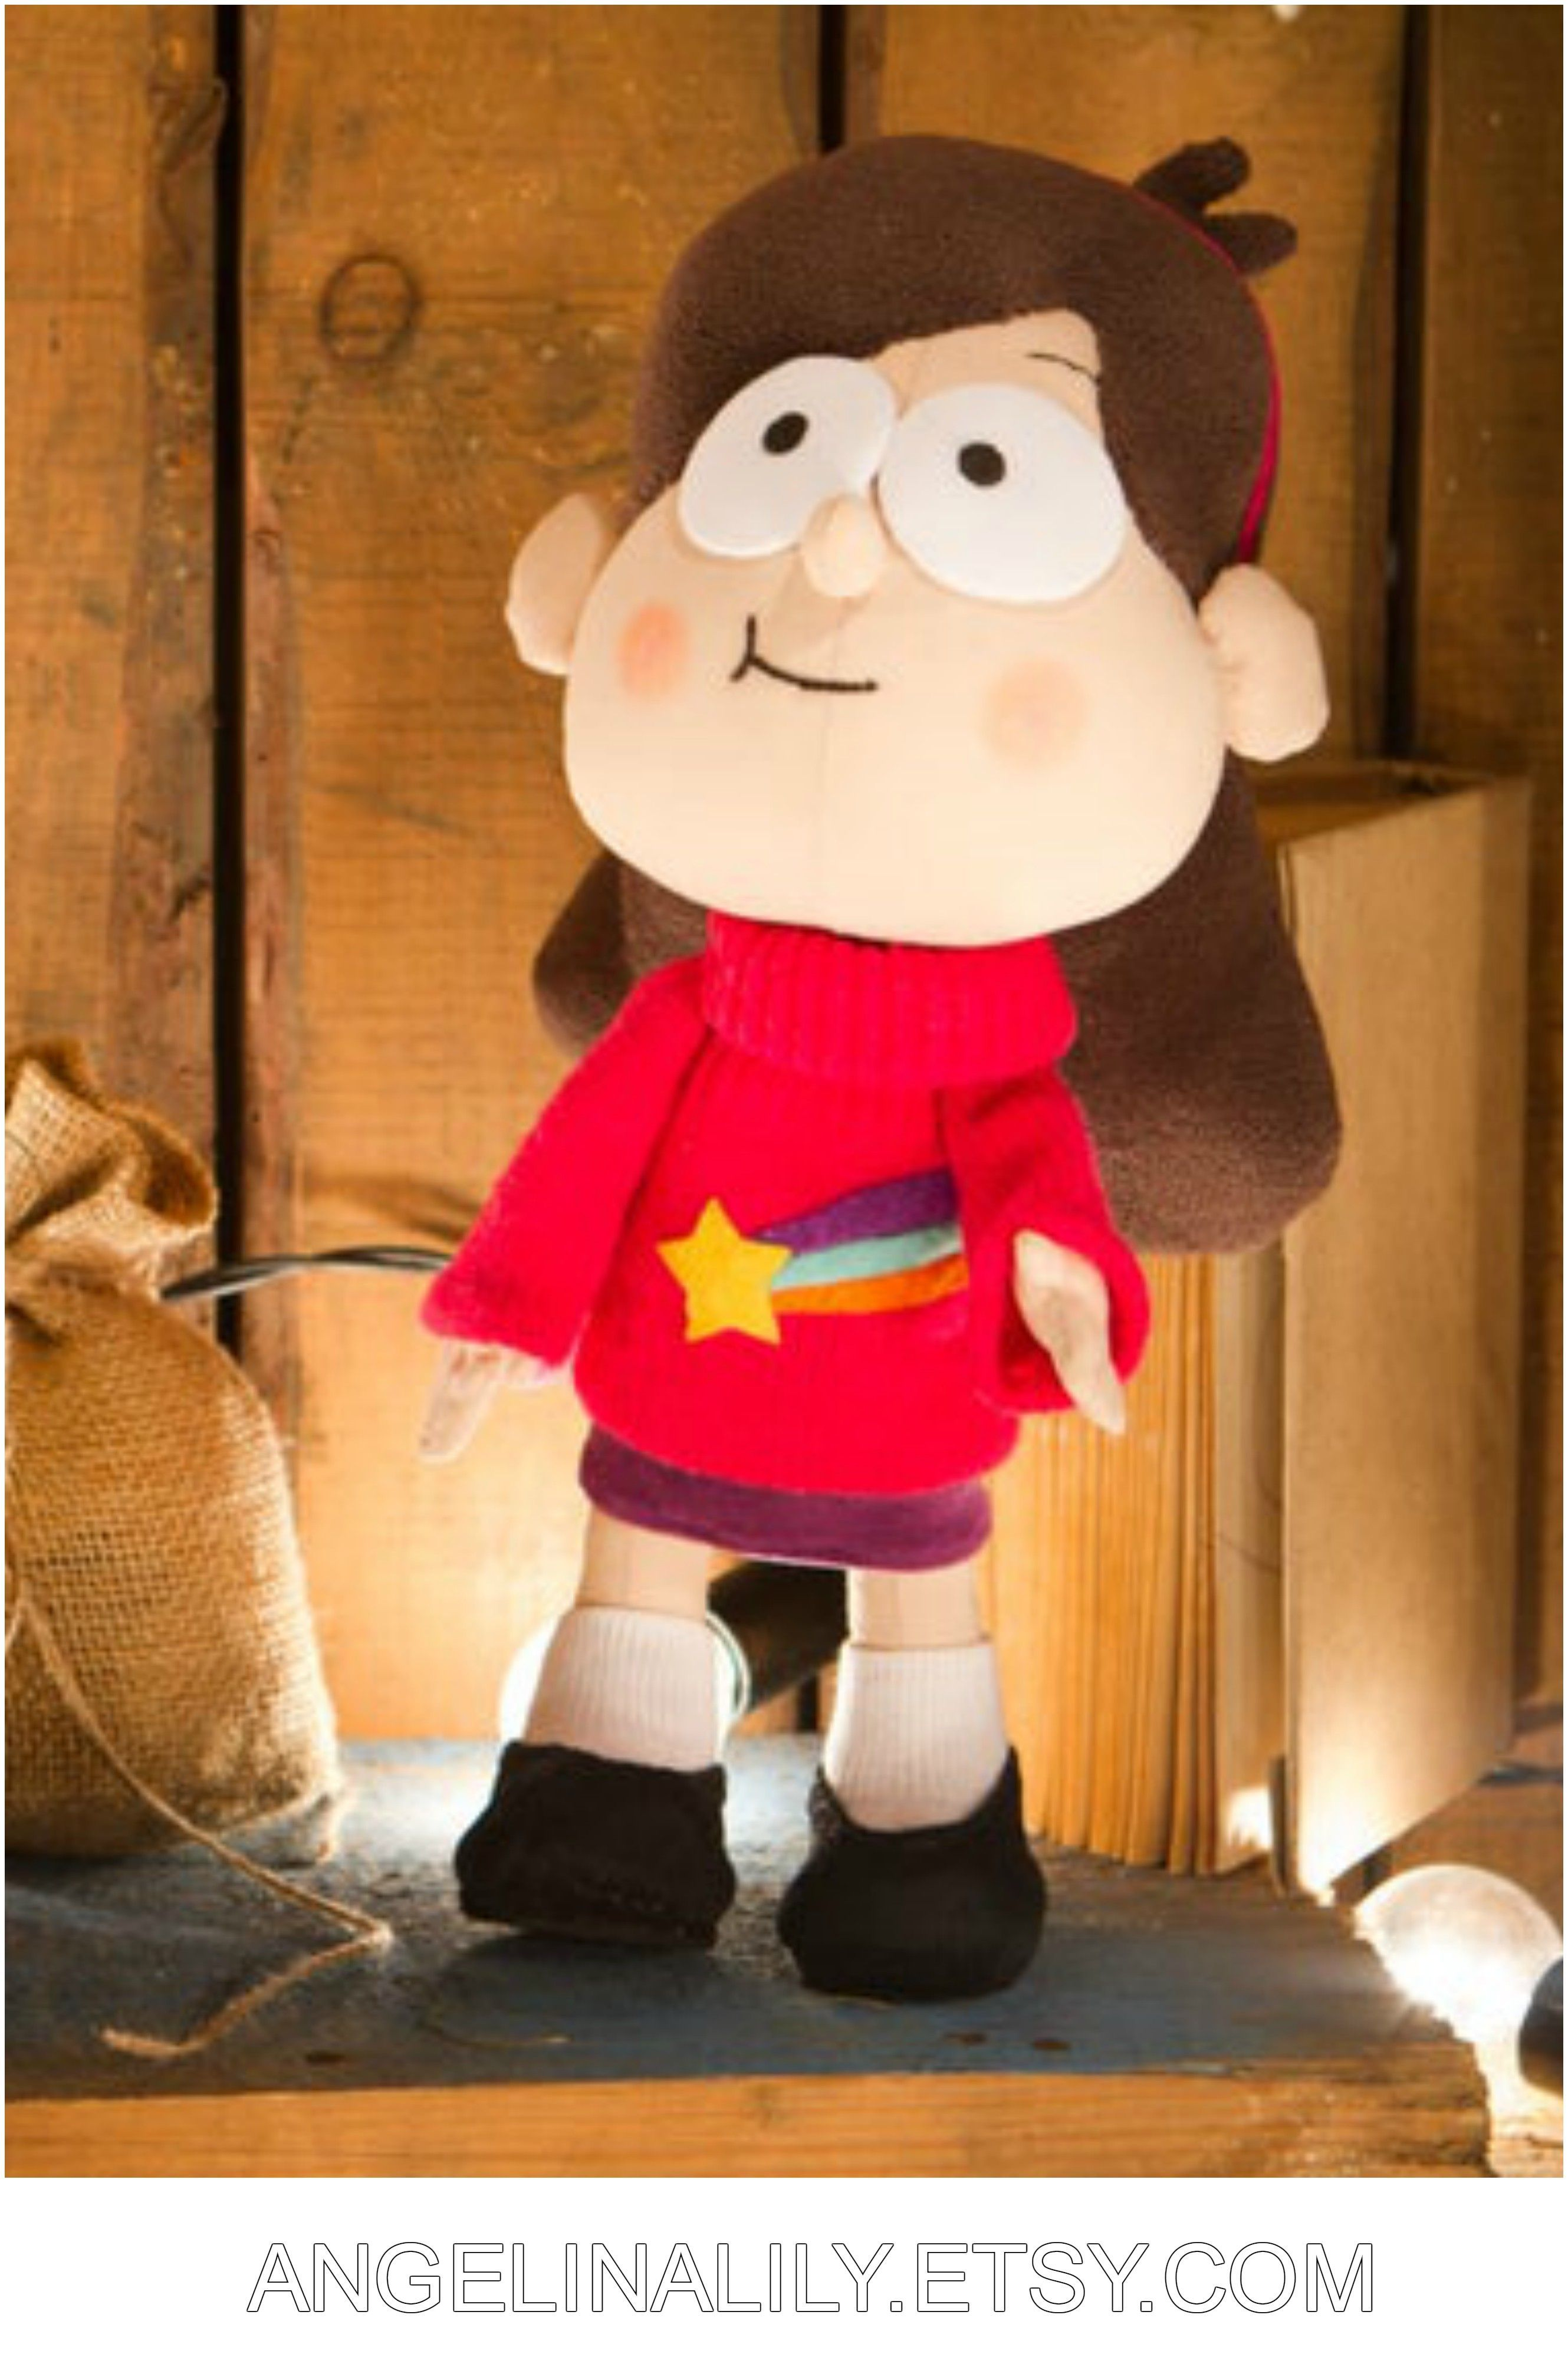 Pin By Angelinalily On Cumple Benedetta In 2020 Gravity Falls Plush Dolls Mabel